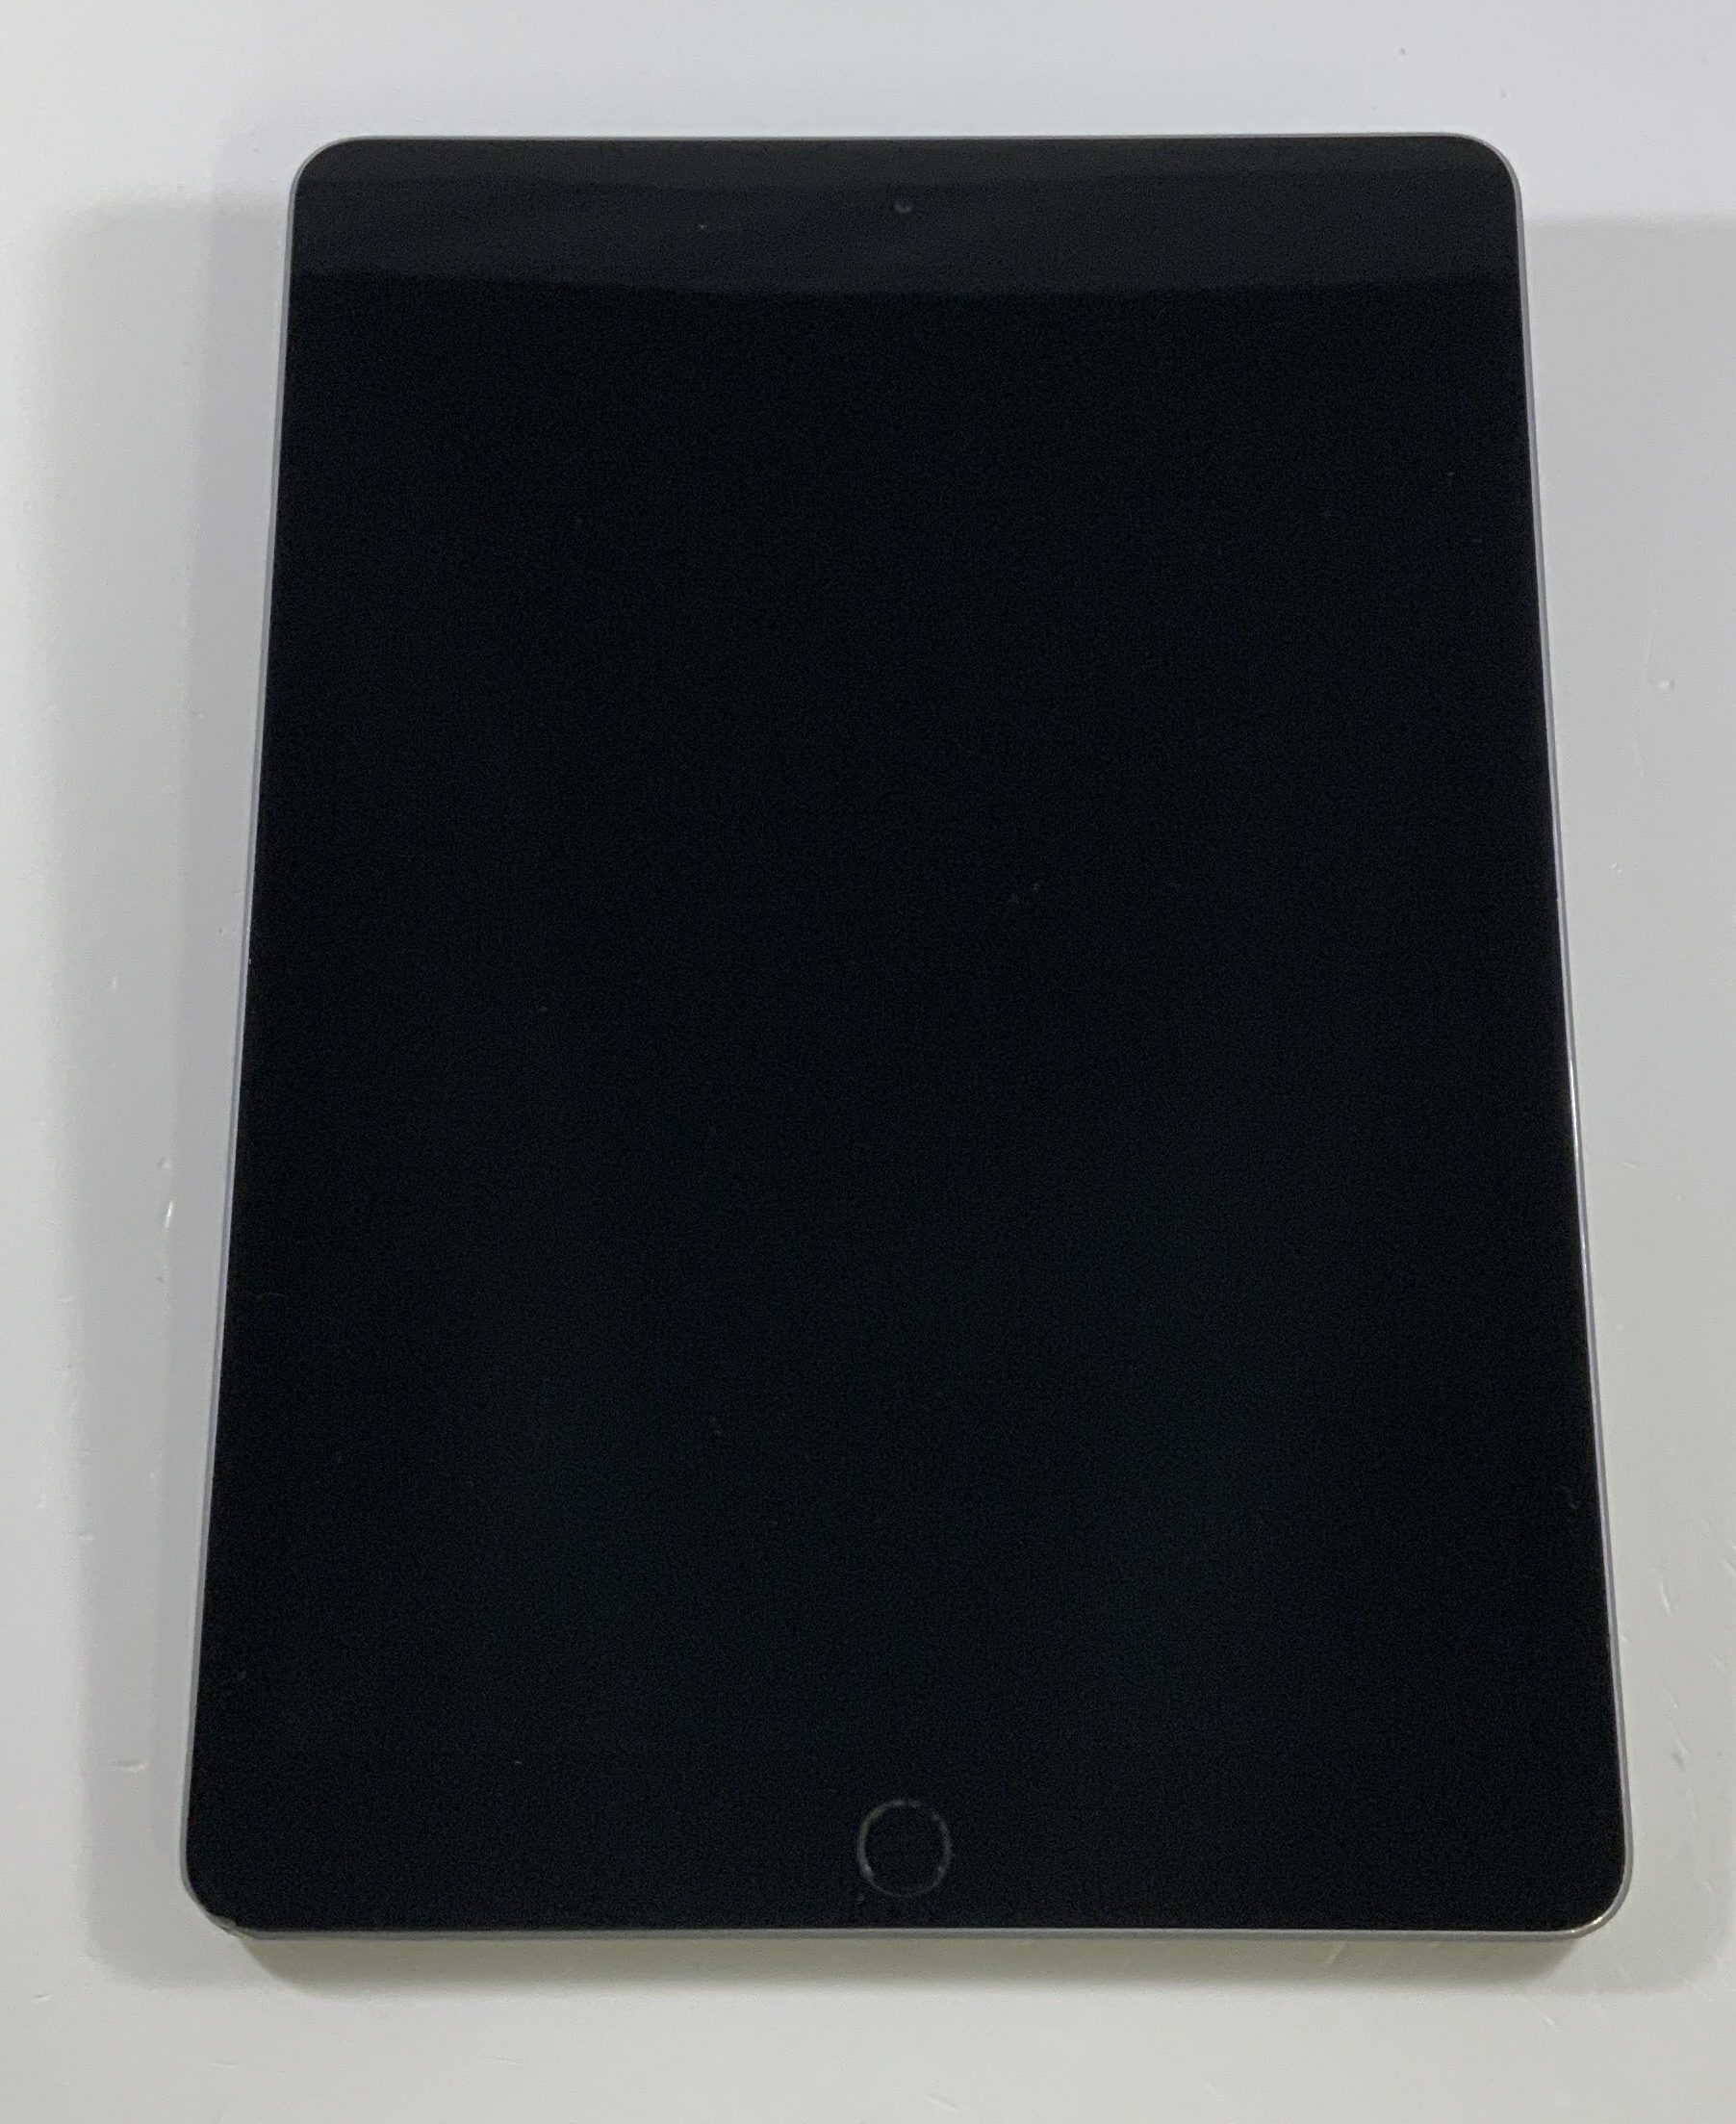 iPad 6 Wi-Fi 32GB, 32GB, Space Gray, image 1